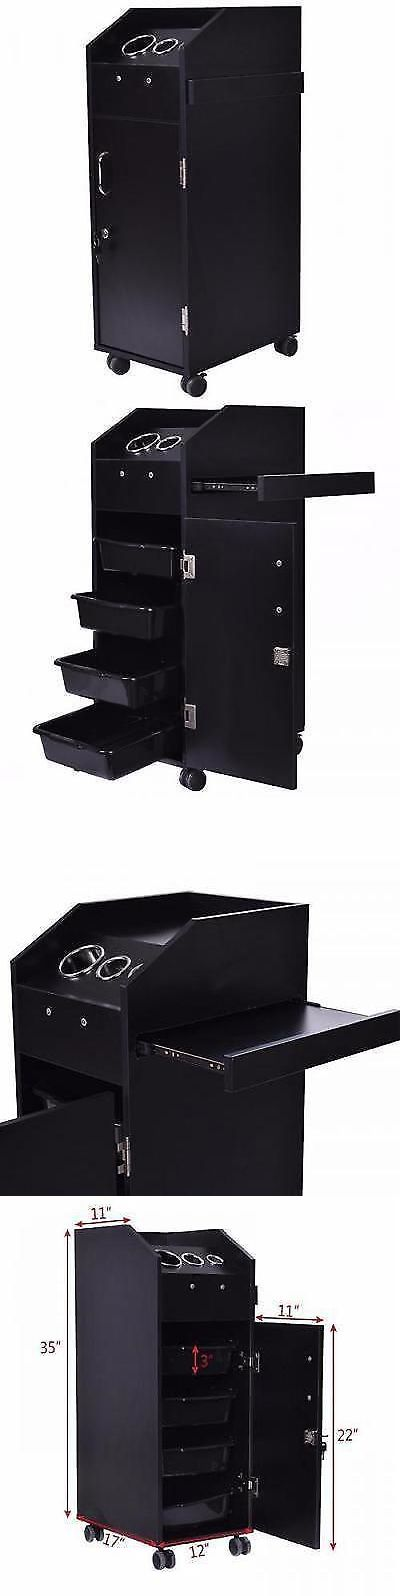 Stylist Stations and Furniture: Black Wood Locking Styling Station 4 Drawer Trolley Cart Tattoo Salon Equipment -> BUY IT NOW ONLY: $142.99 on eBay!